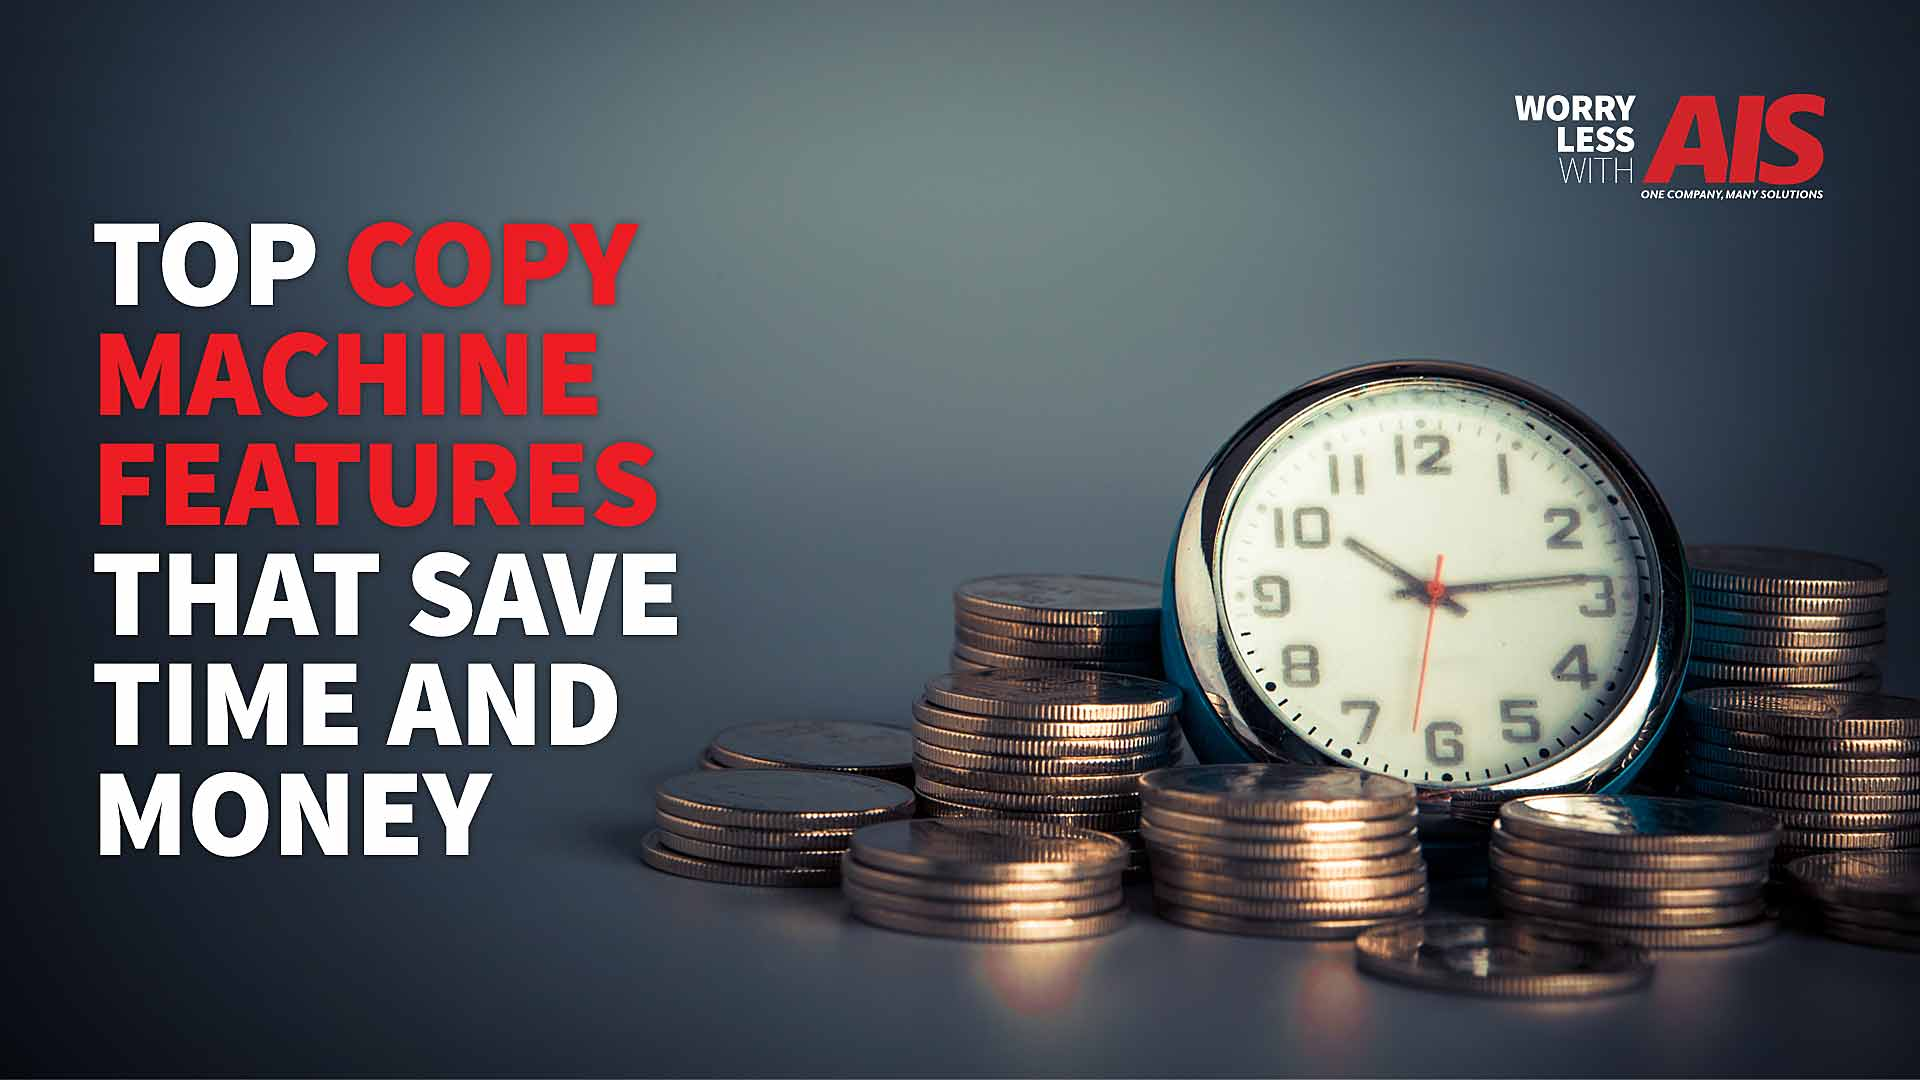 Top 10 Copy Machine Features That Save You Time And Money